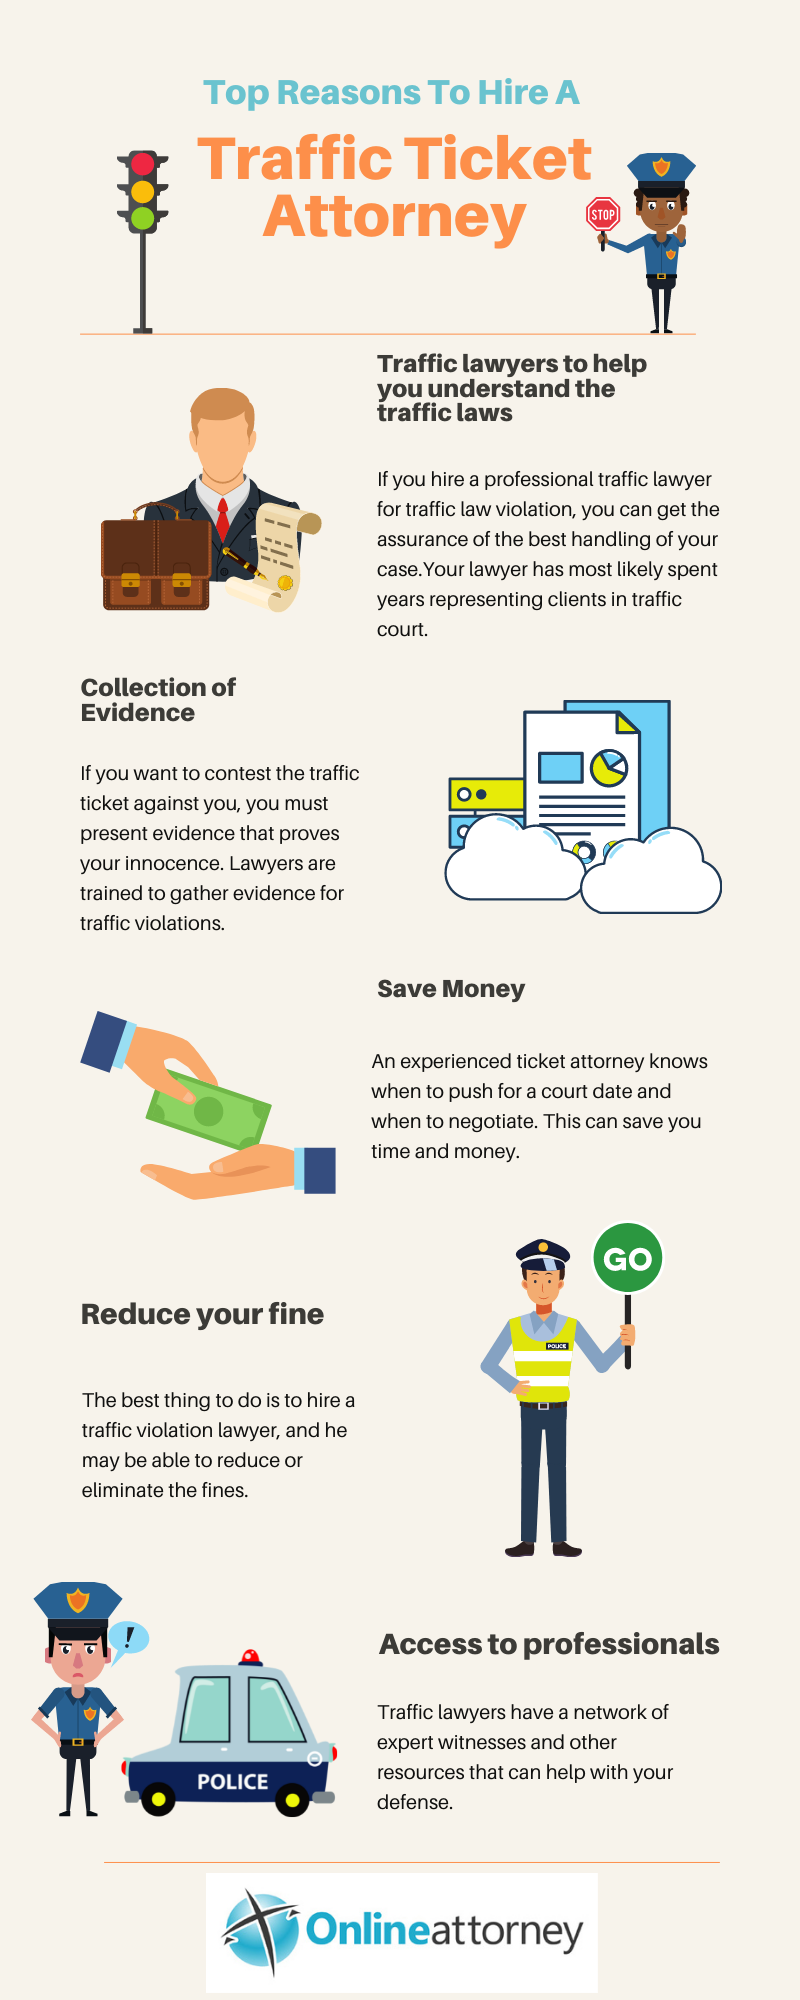 Top reasons to hire a Traffic Ticket attorney